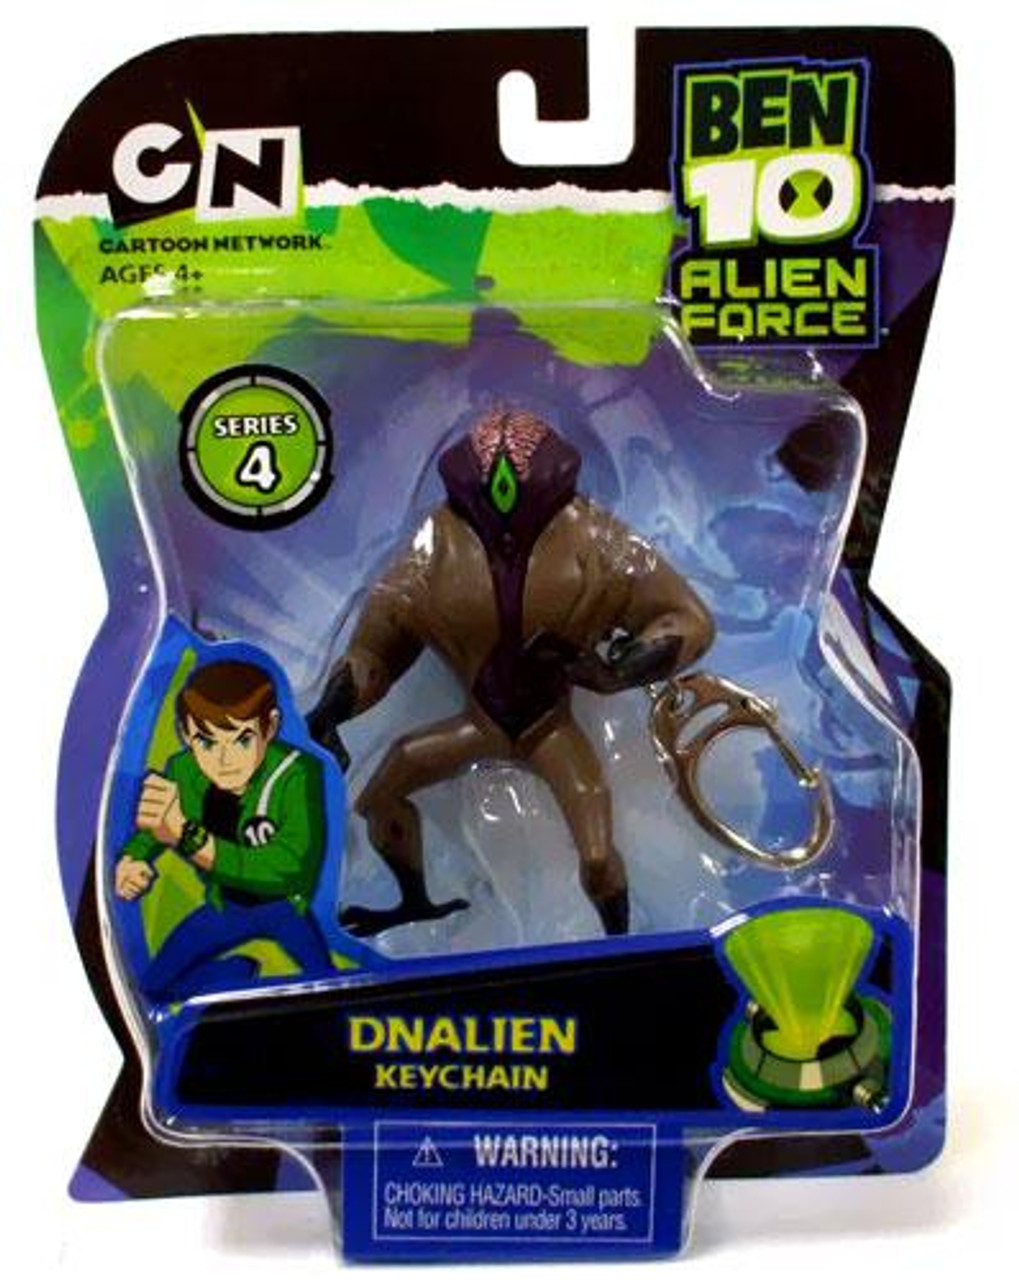 Ben 10 Alien Force Series 4 DNAlien Keychain